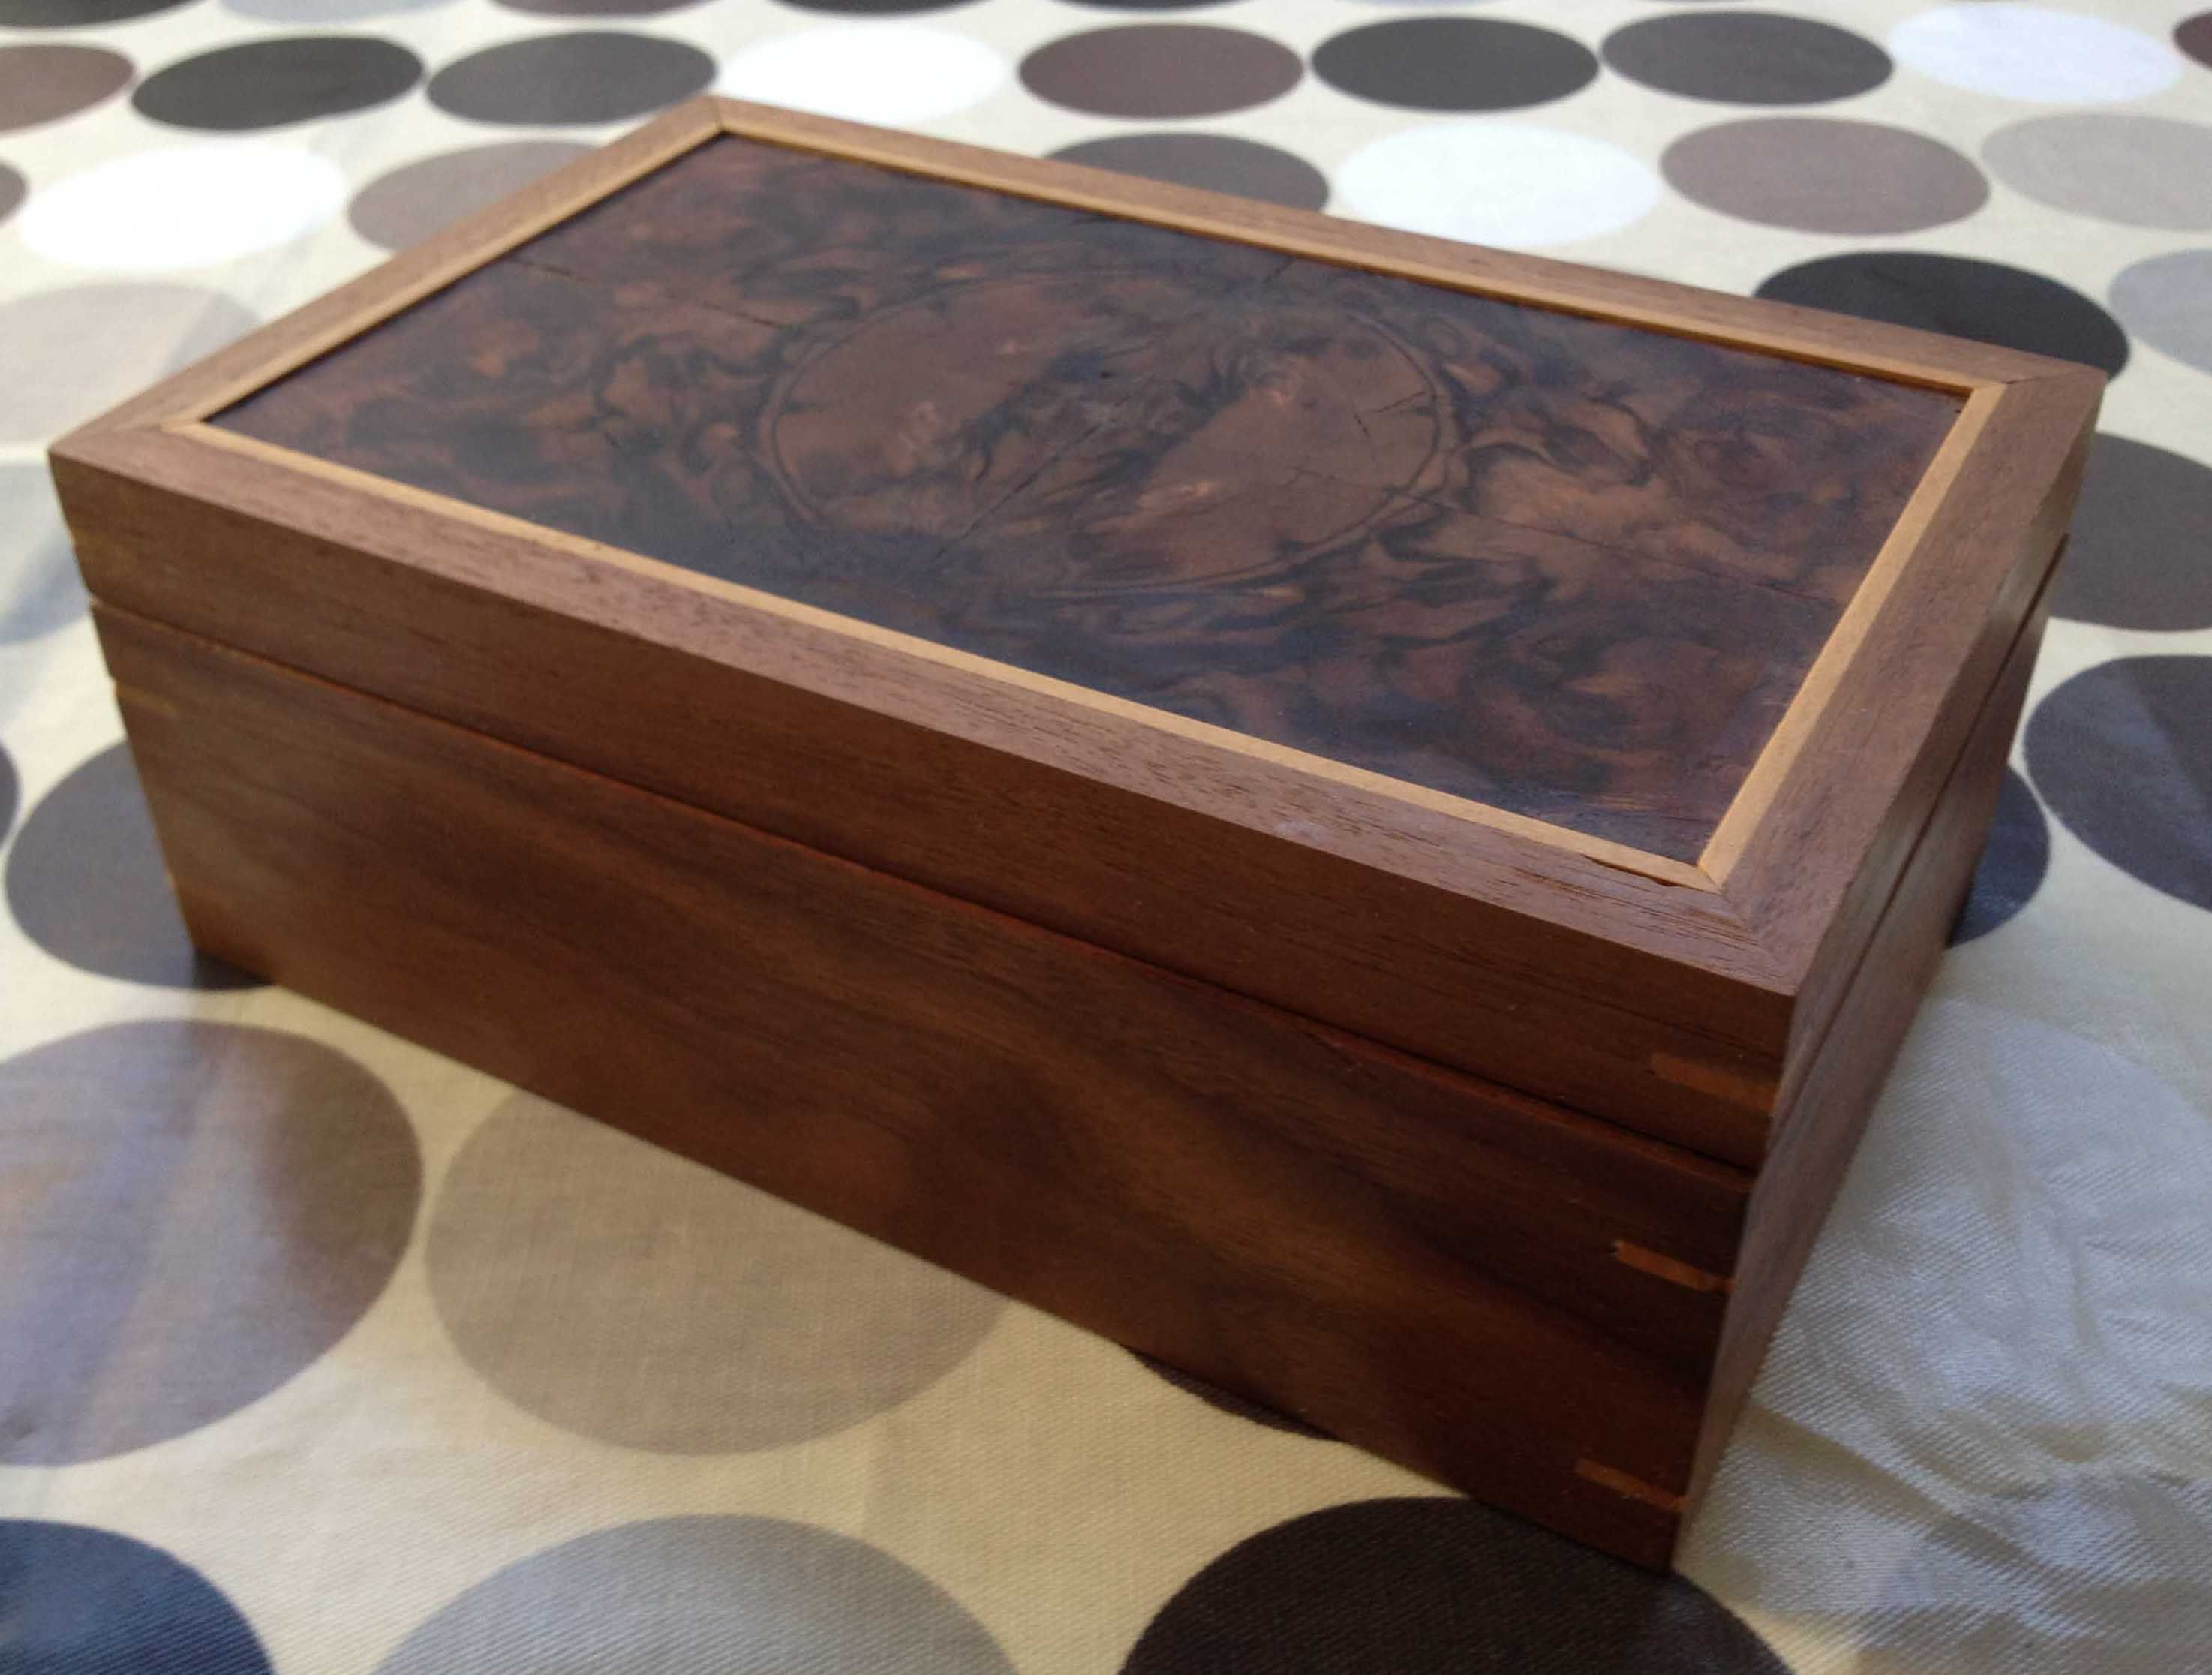 Veneered Jewellery Box in solid American Walnut with a 4way book